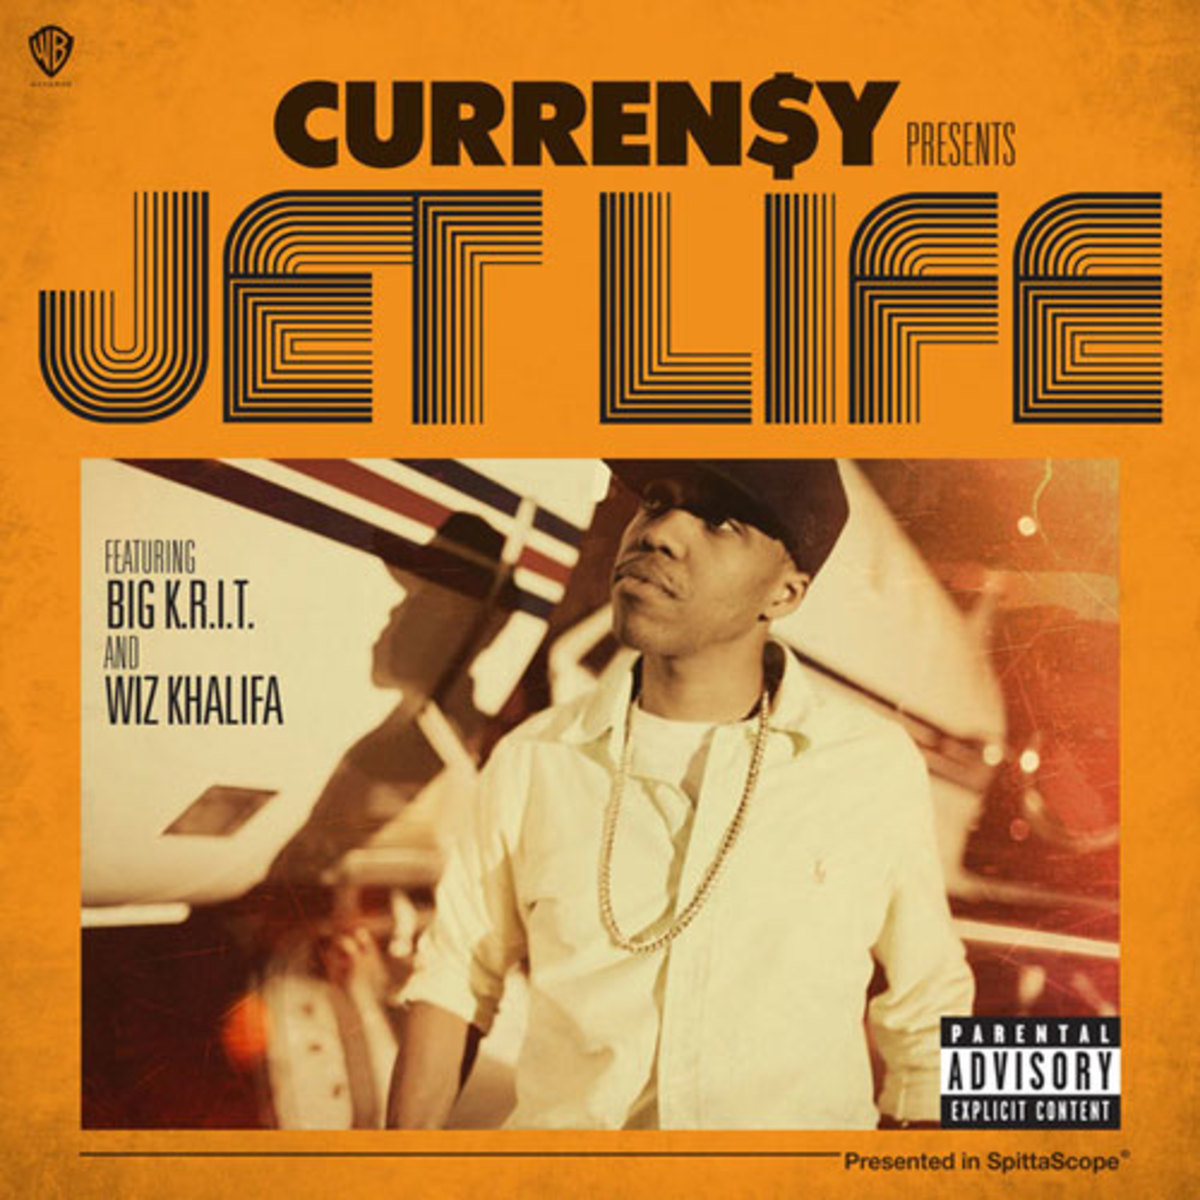 currensy-jetlife.jpg